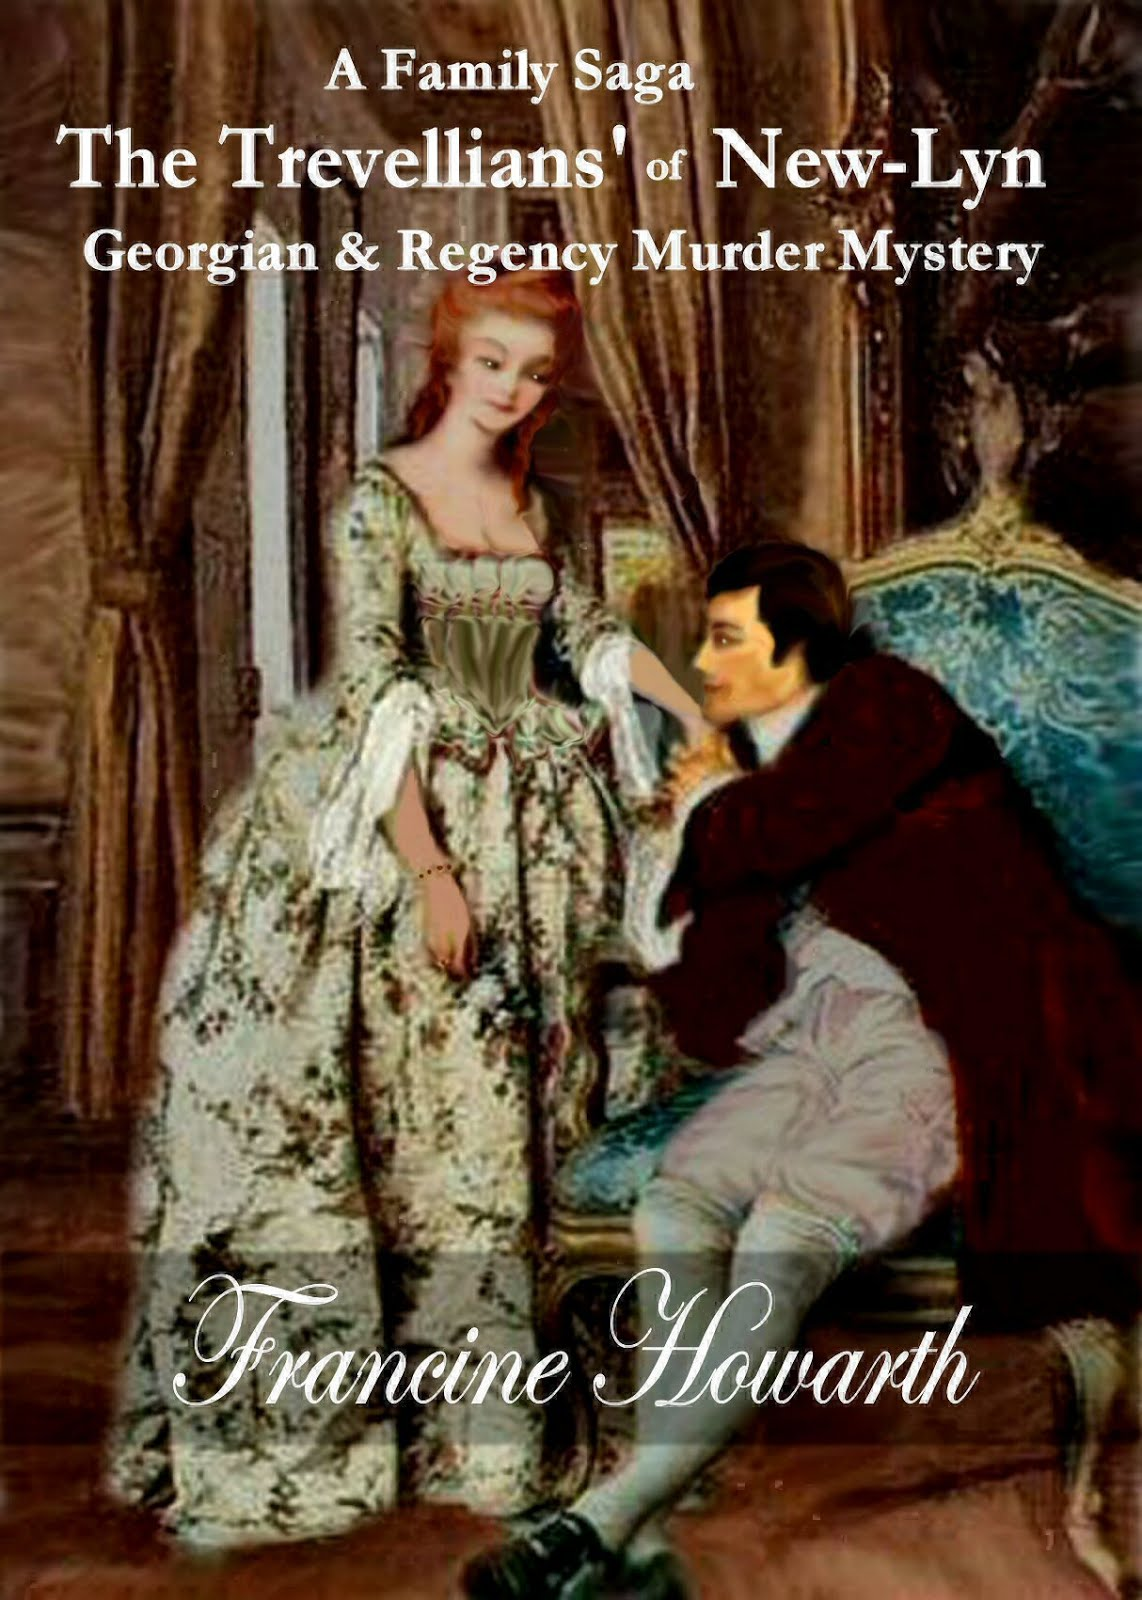 Georgian/Regency Murder Mystery Spanning Two Generations